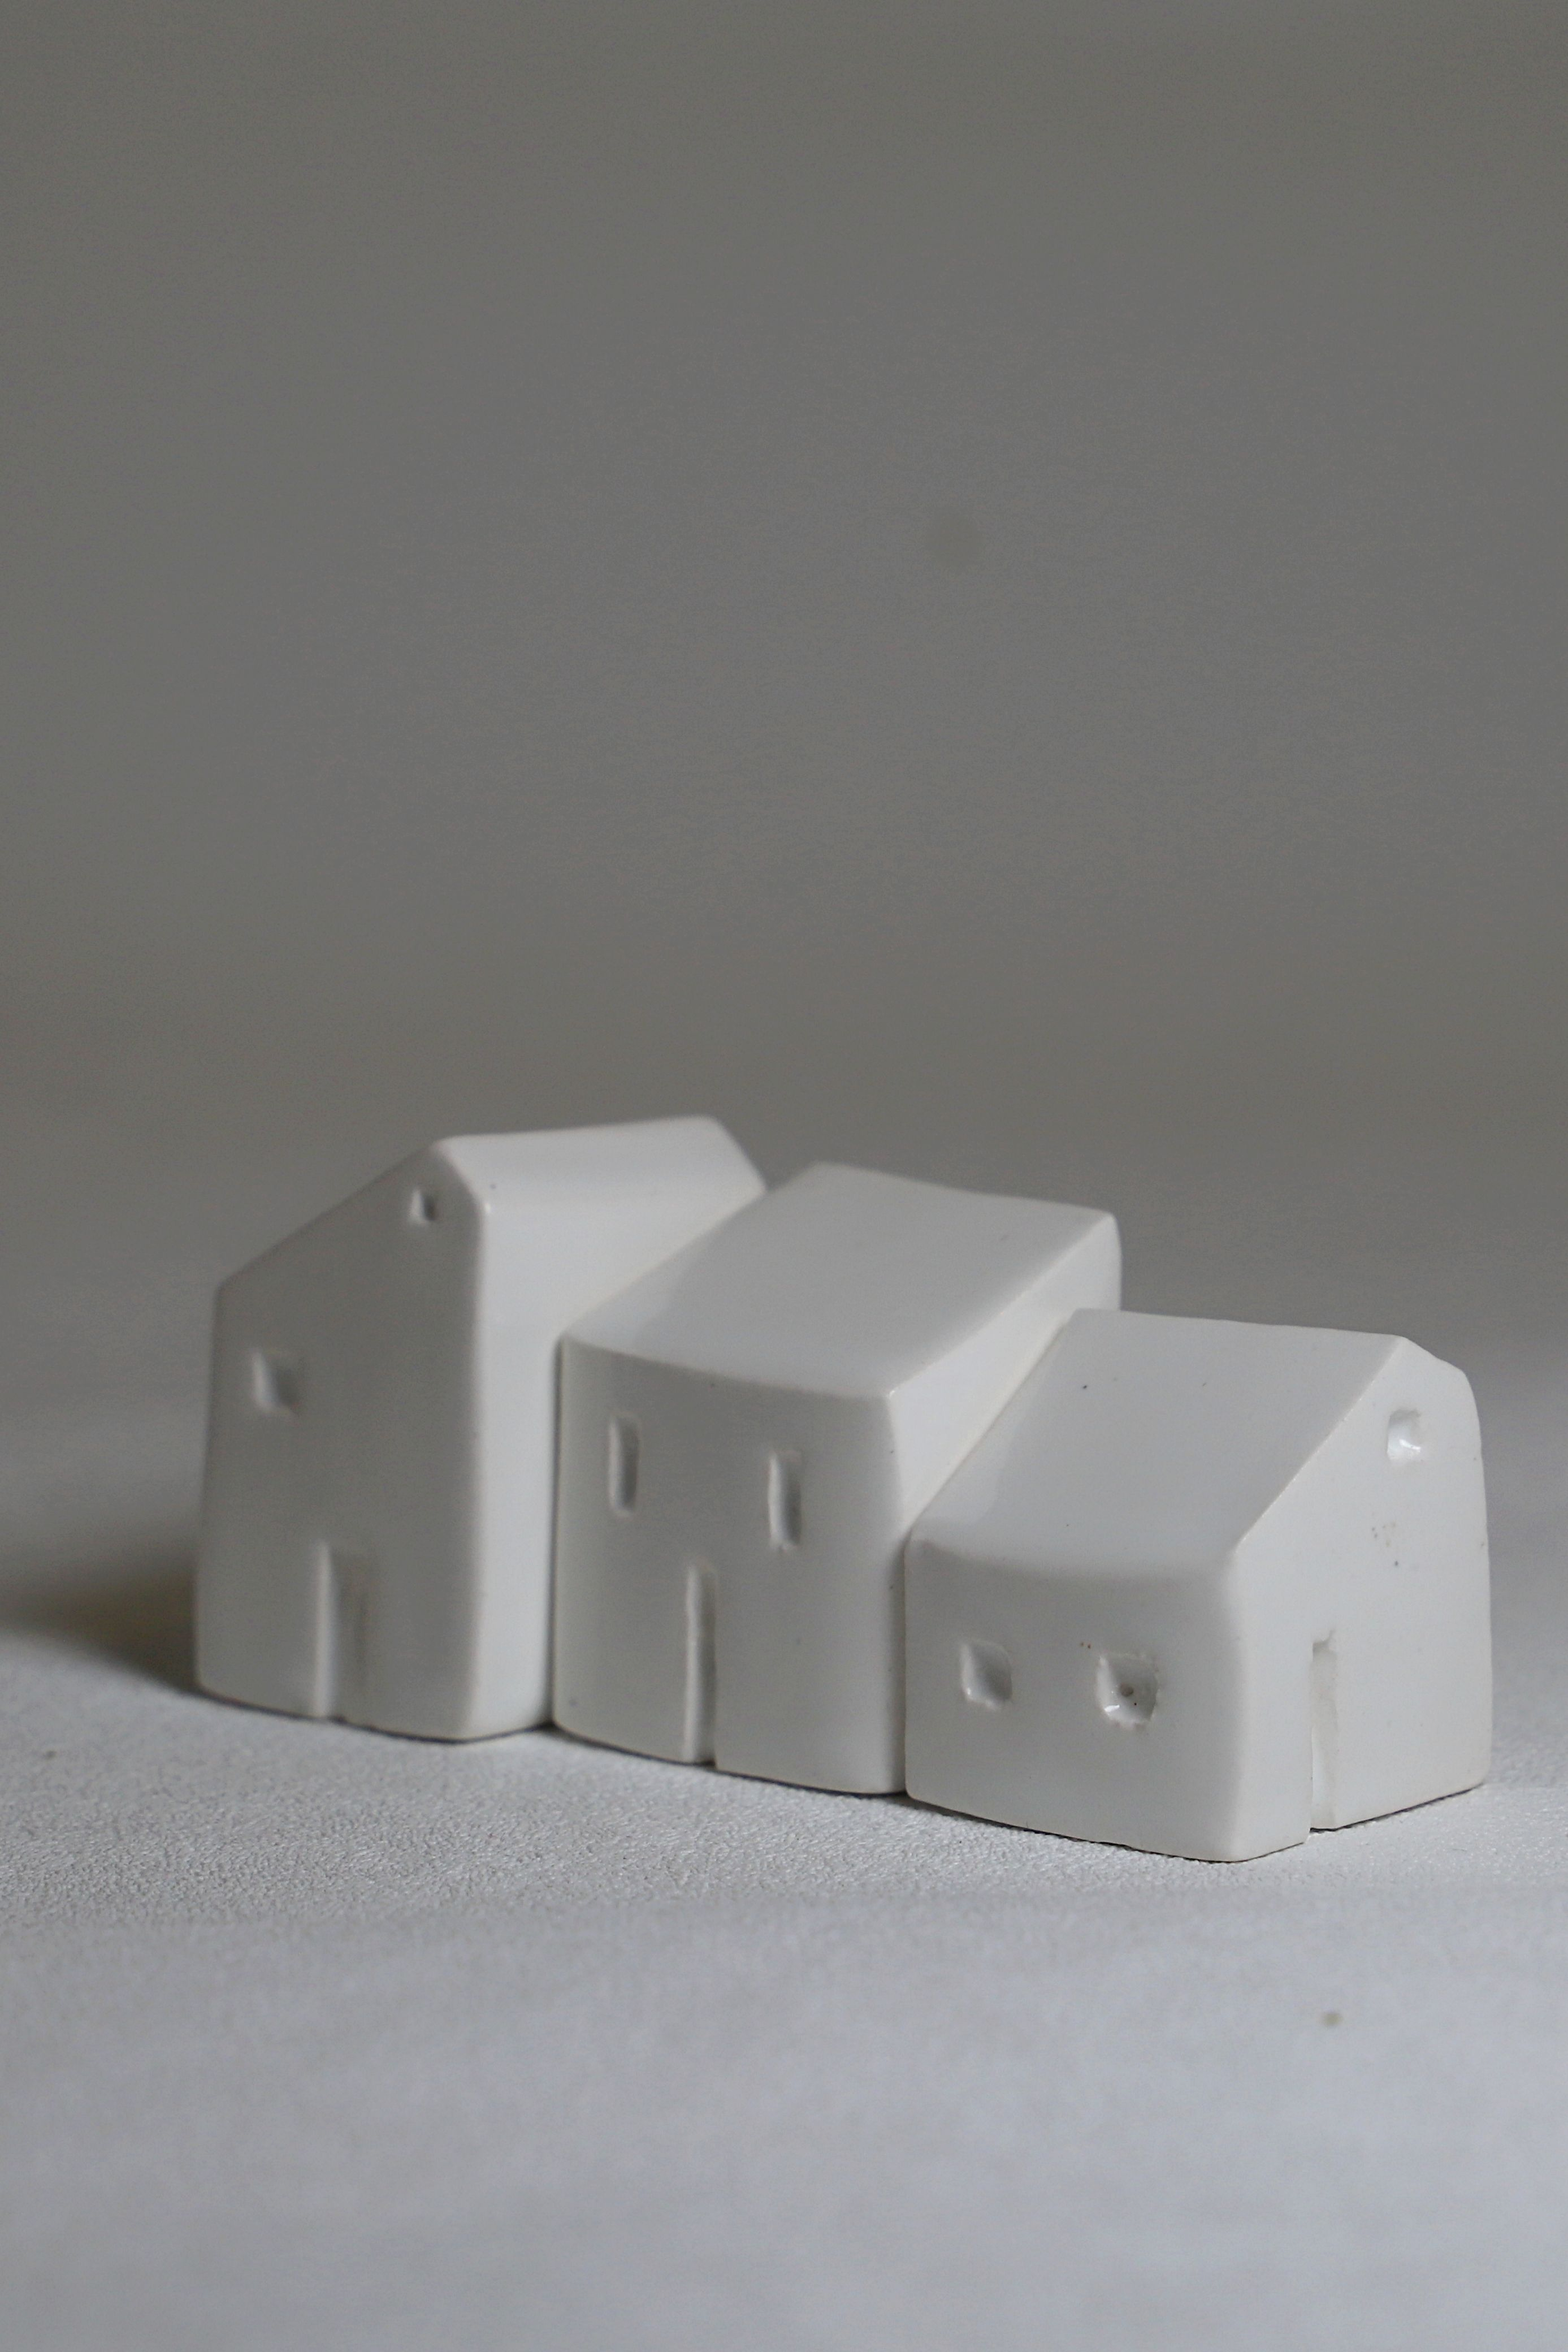 Ceramic Houses Set Of 3 Small White Ceramic House Sculptures Made